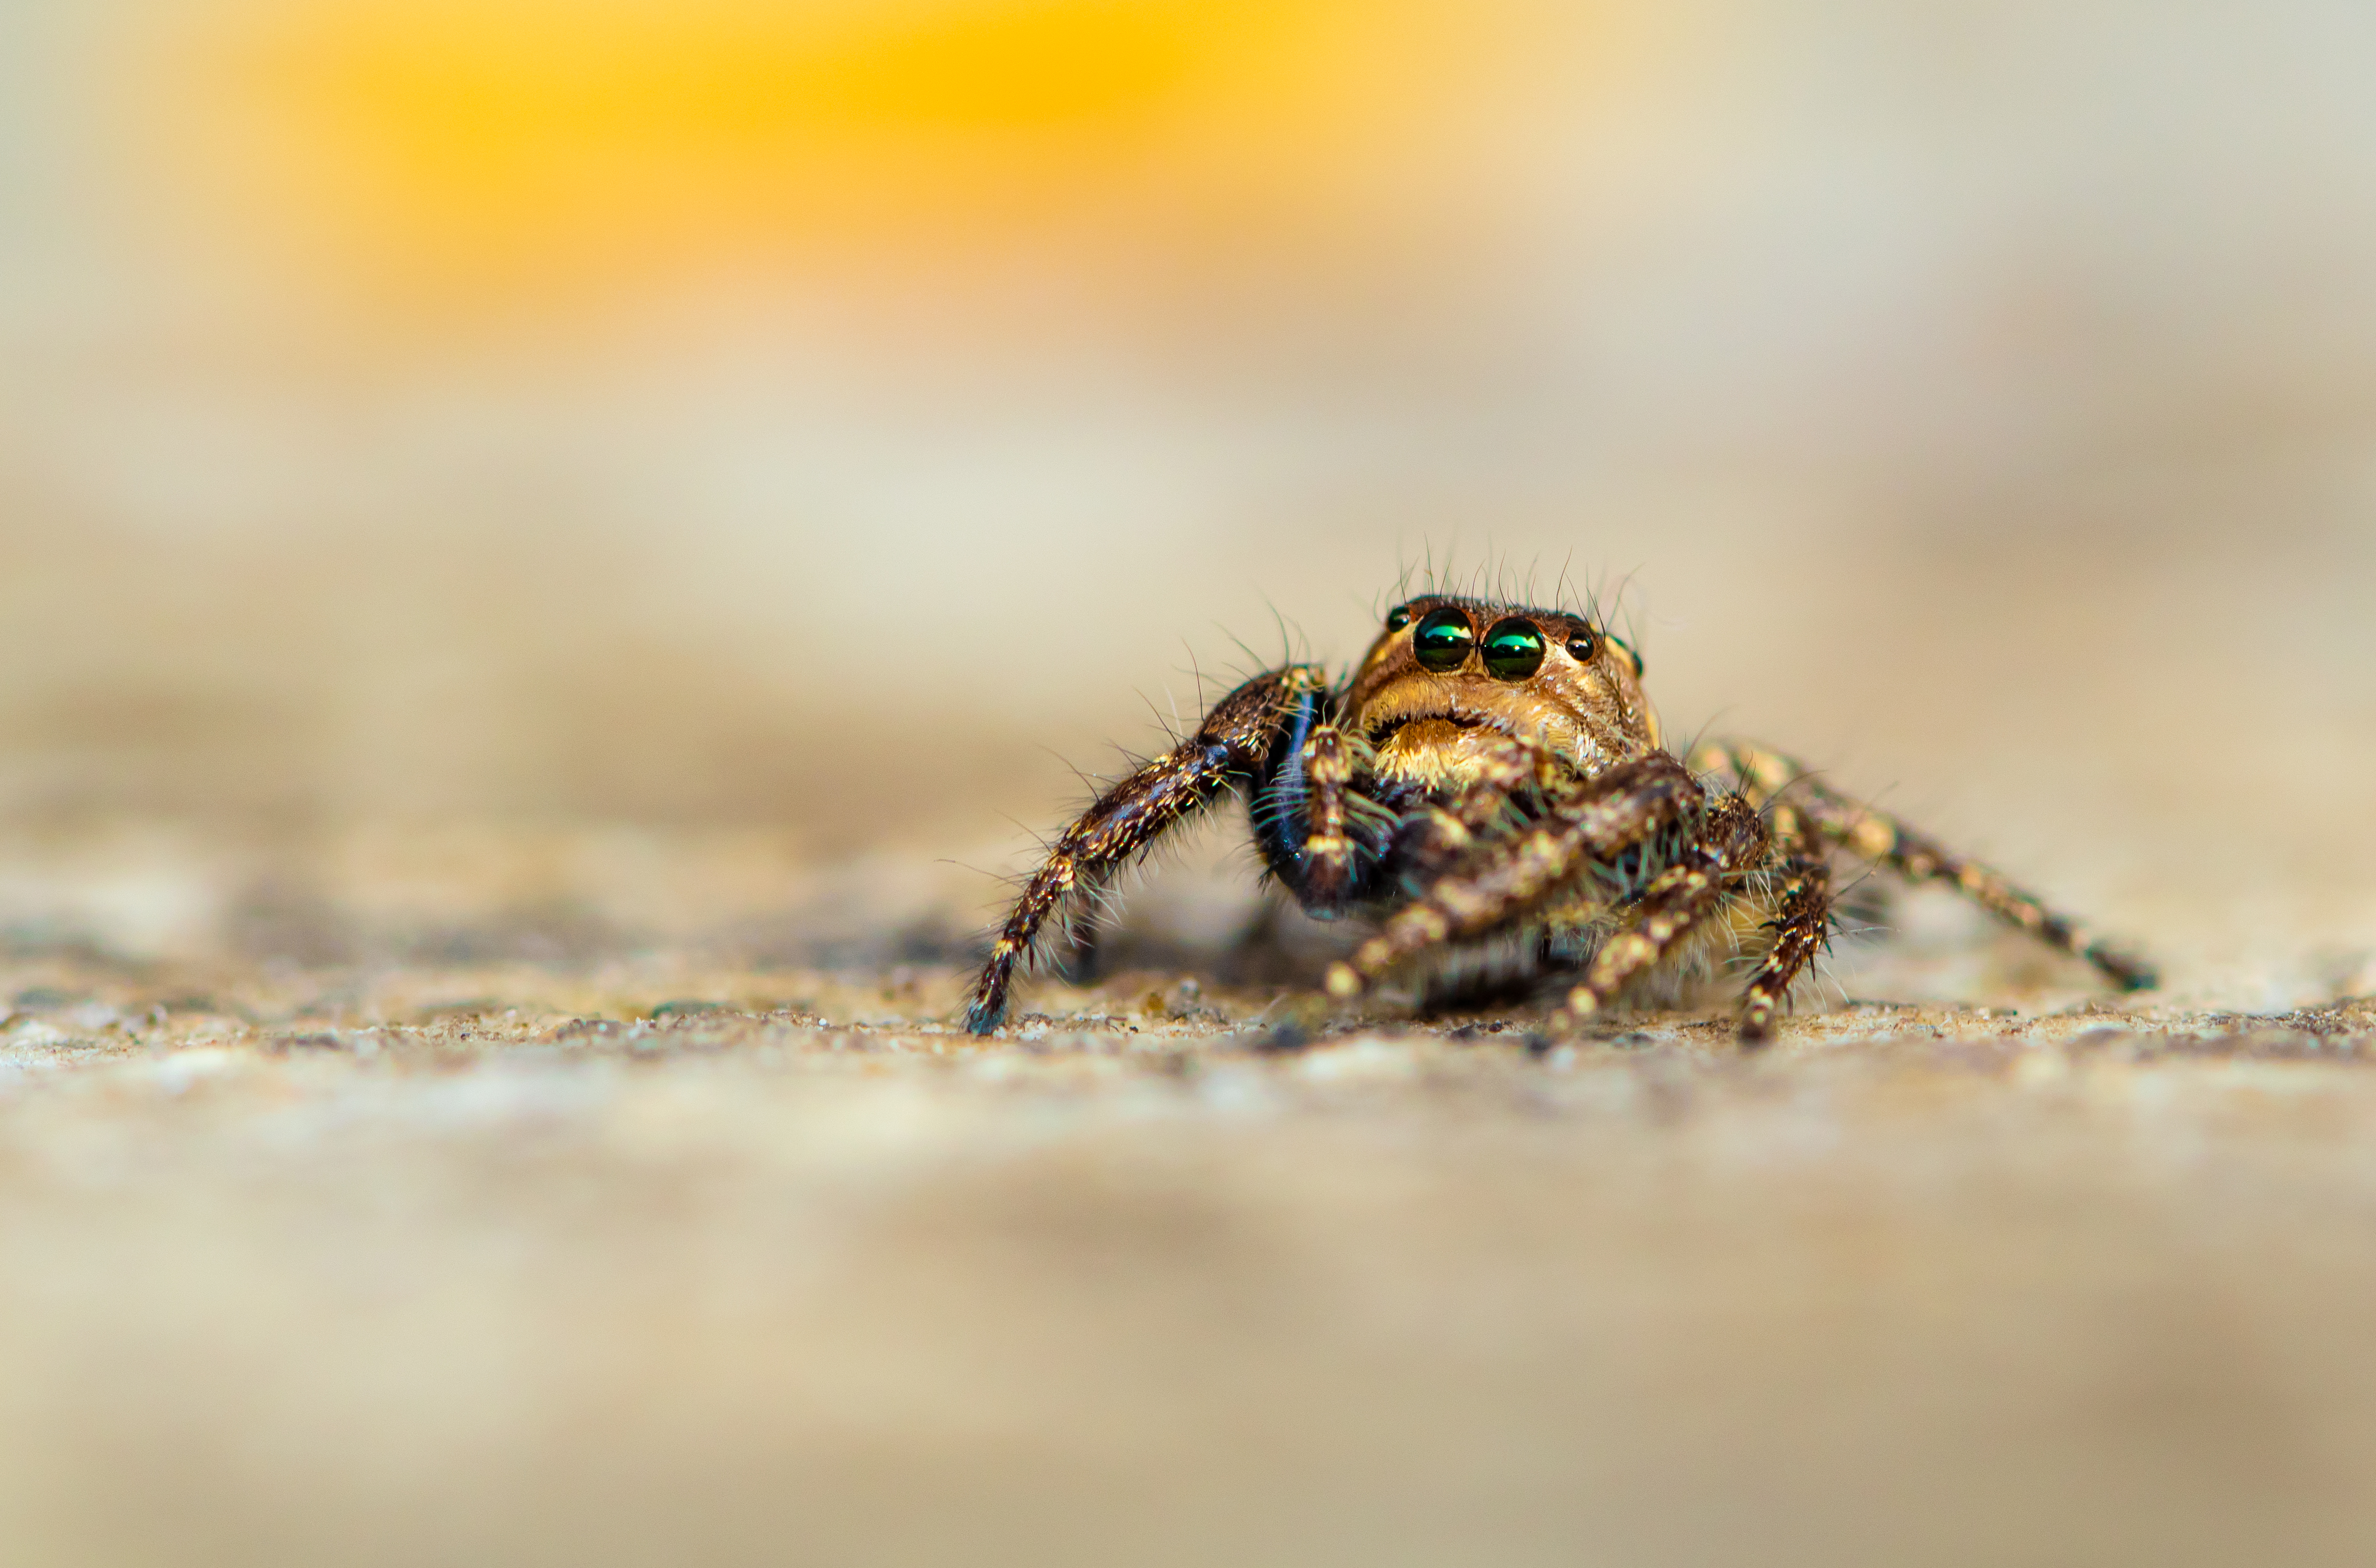 Hyllus male Jumping spider|macro |Canon gears